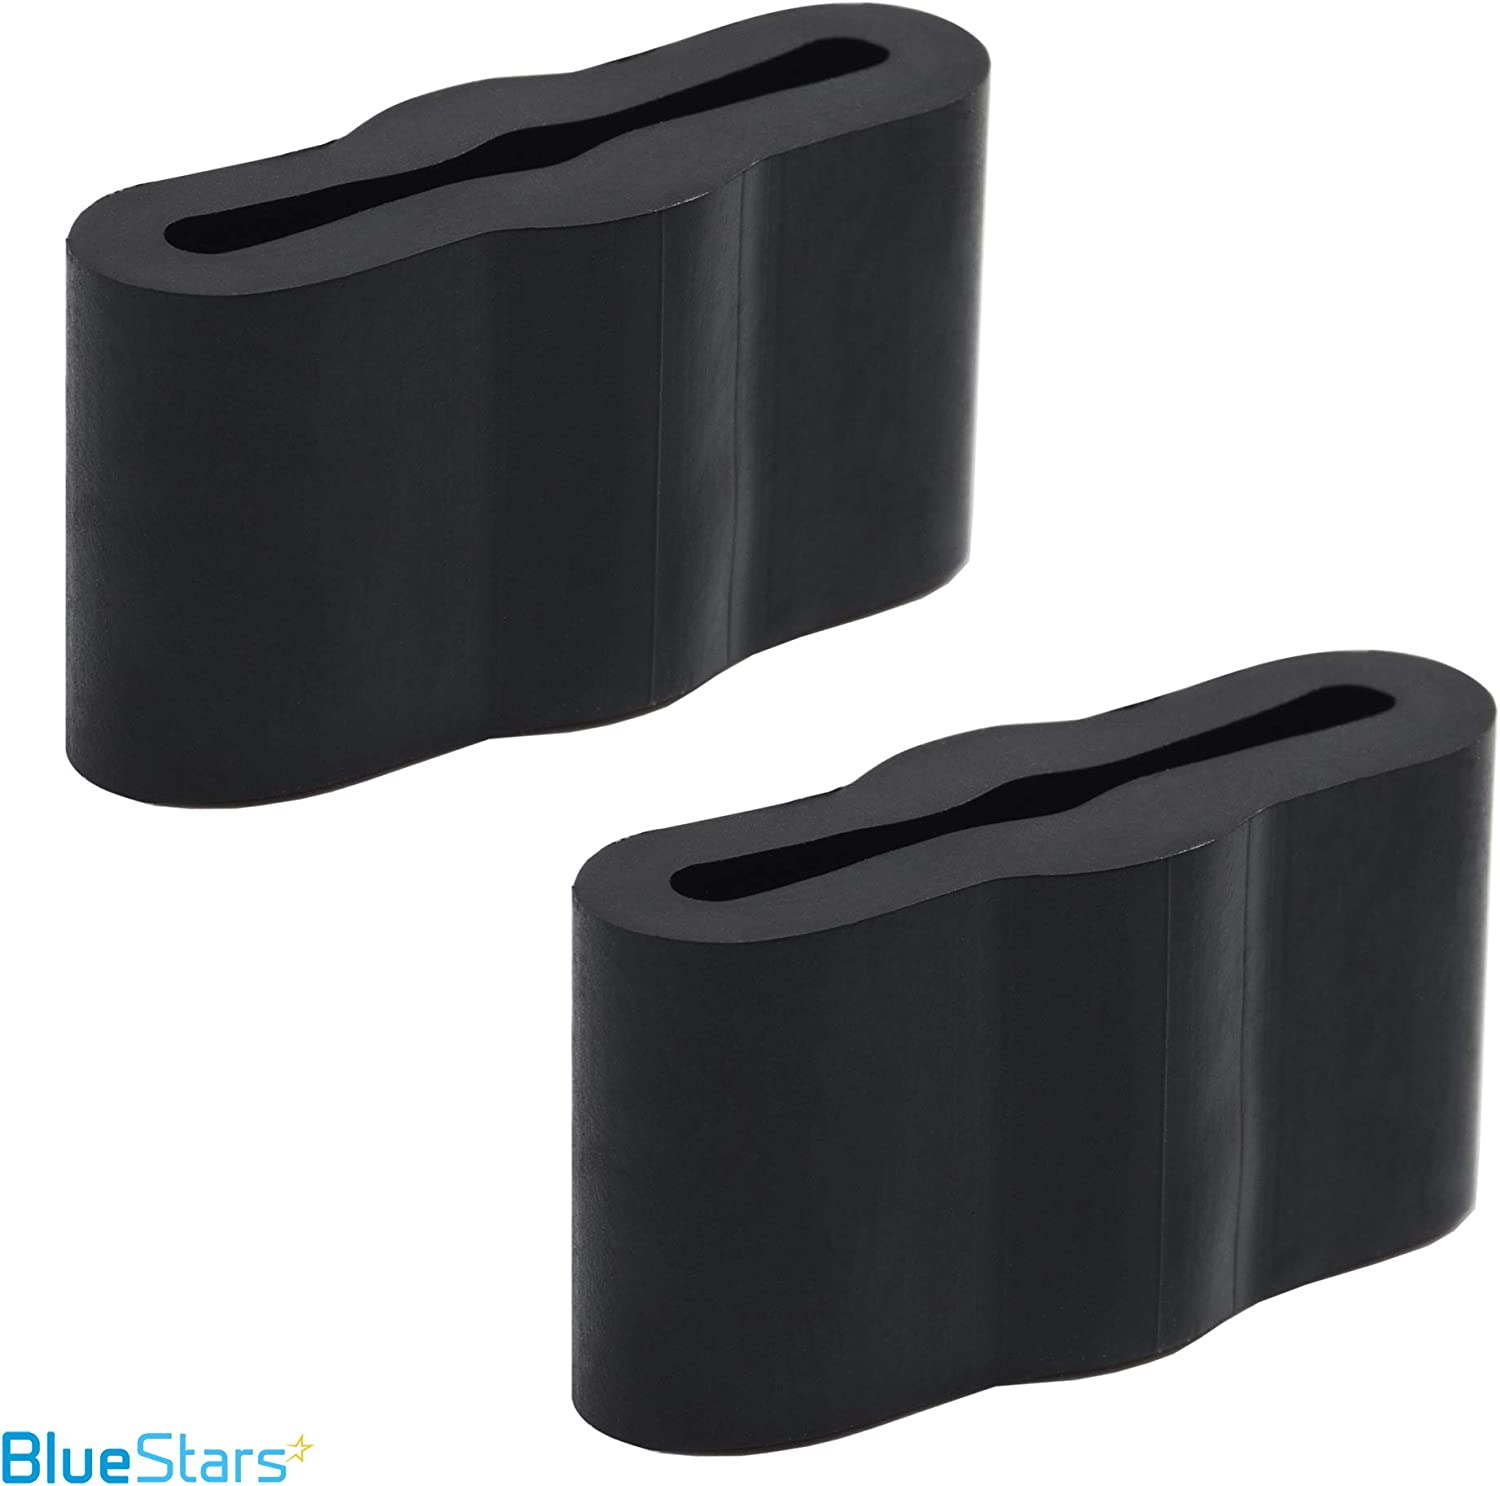 Replaces WP8268961 WP8268961VP Exact Fit For Frigidaire /& Kenmore Dishwashers Ultra Durable 8268961 Dishwasher Friction Pad Replacement Part by Blue Stars PACK OF 2